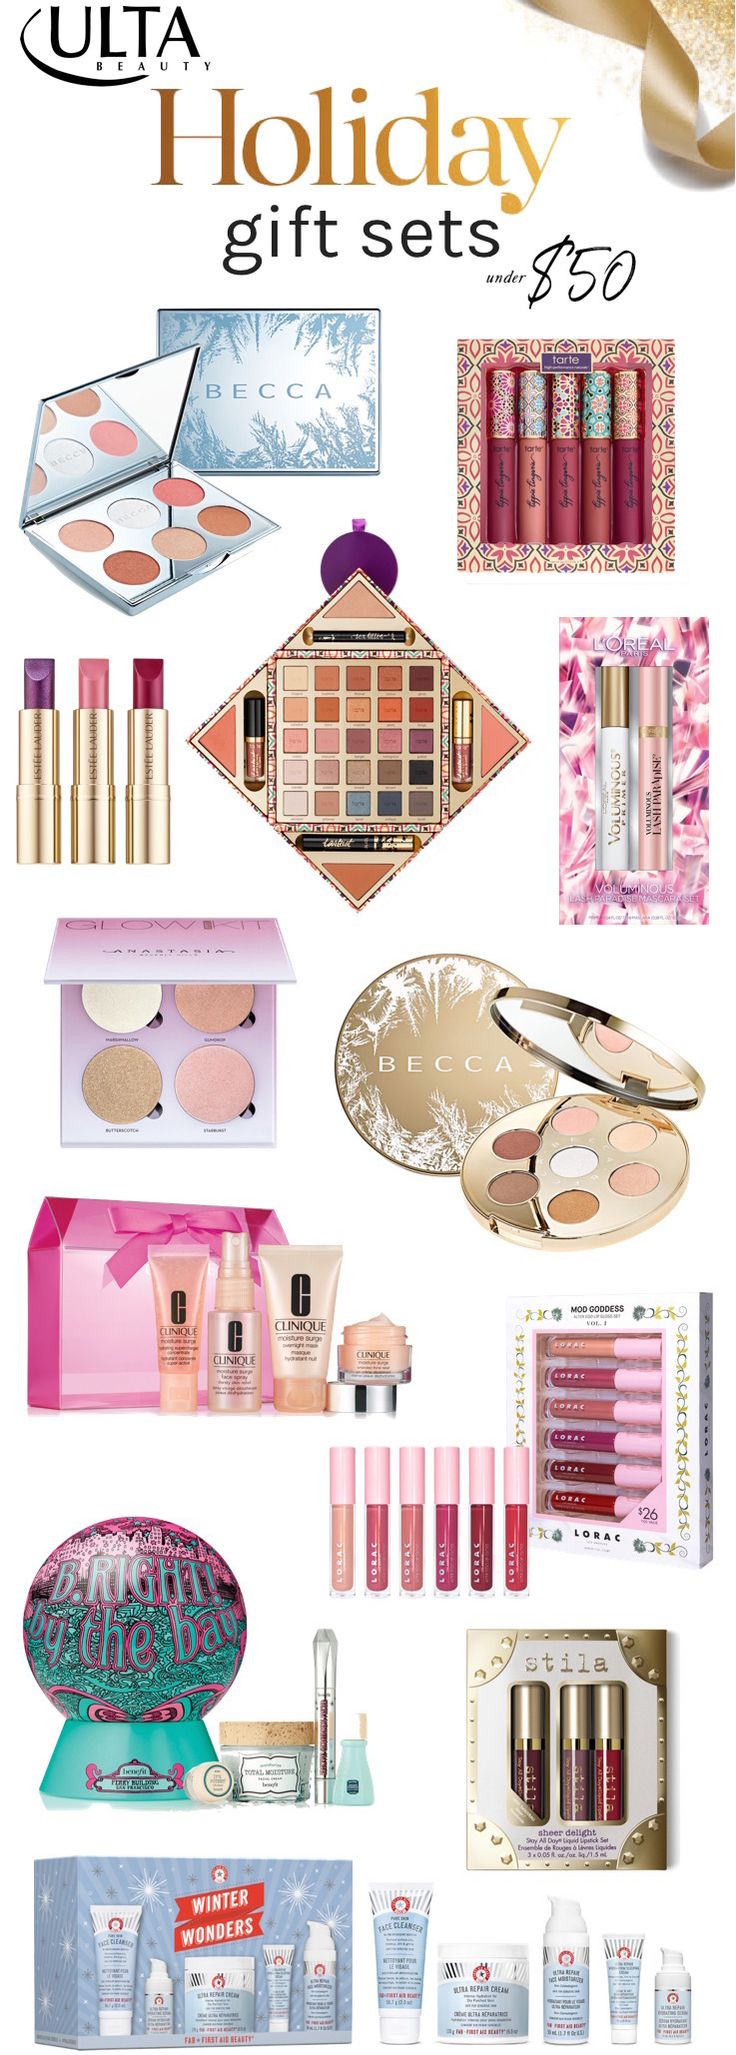 The must-have holiday 2017 makeup gift sets at Ulta Beauty | Click through to see the full list of Ulta Beauty goodies you'll want to add to your holiday list ASAP!